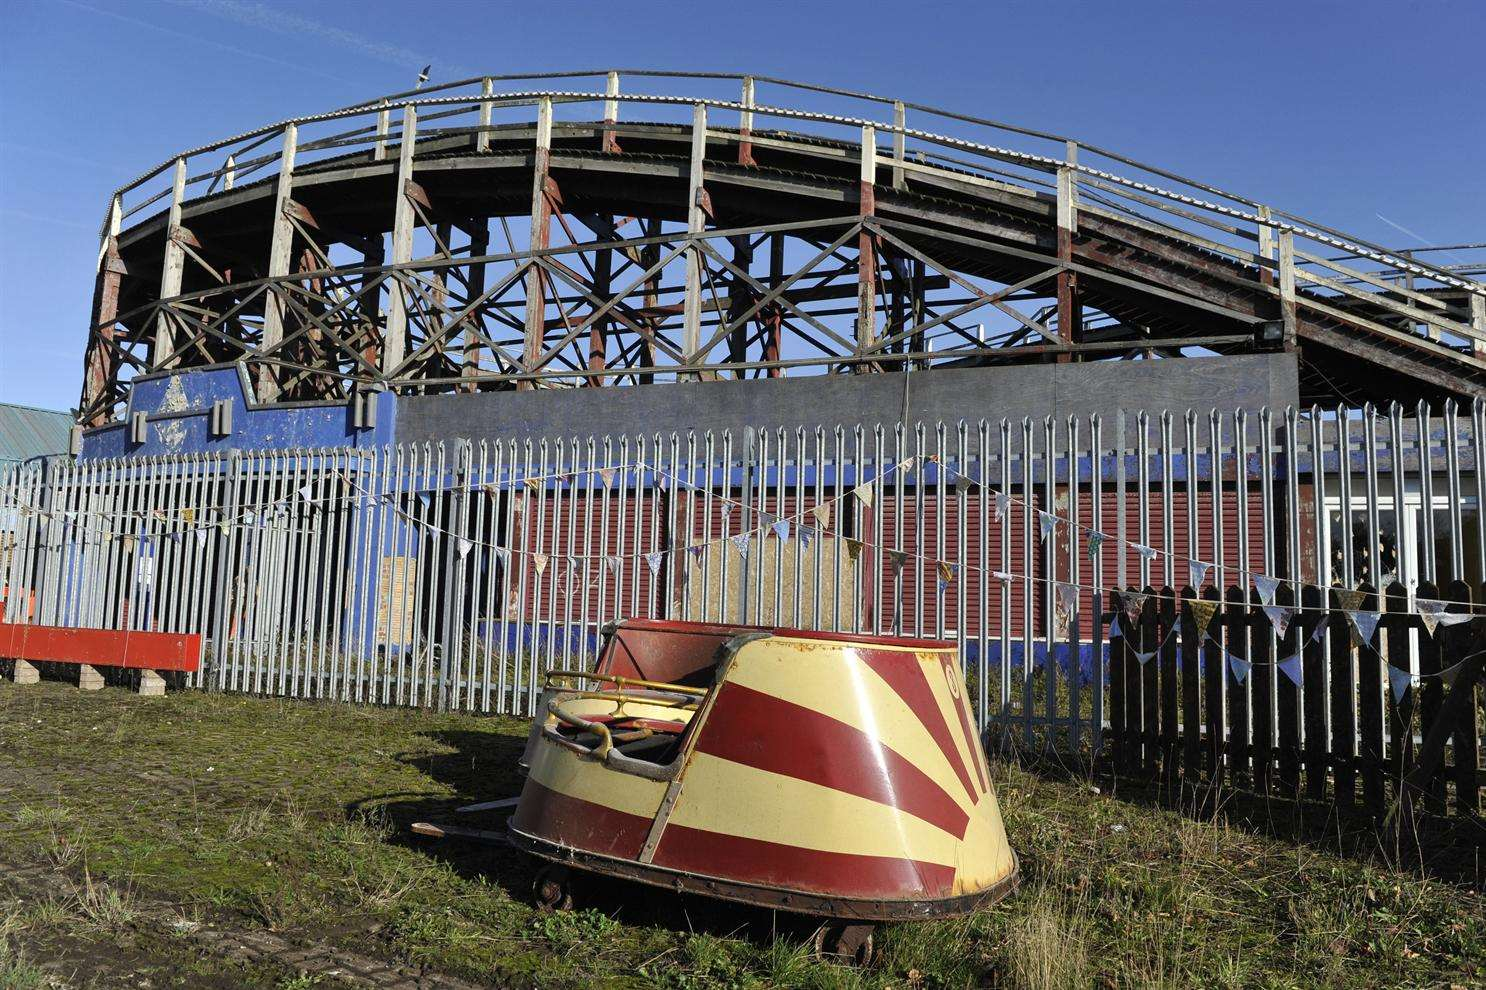 The Reimagined Dreamland will make use of all the equipment left over after it closed in 2006